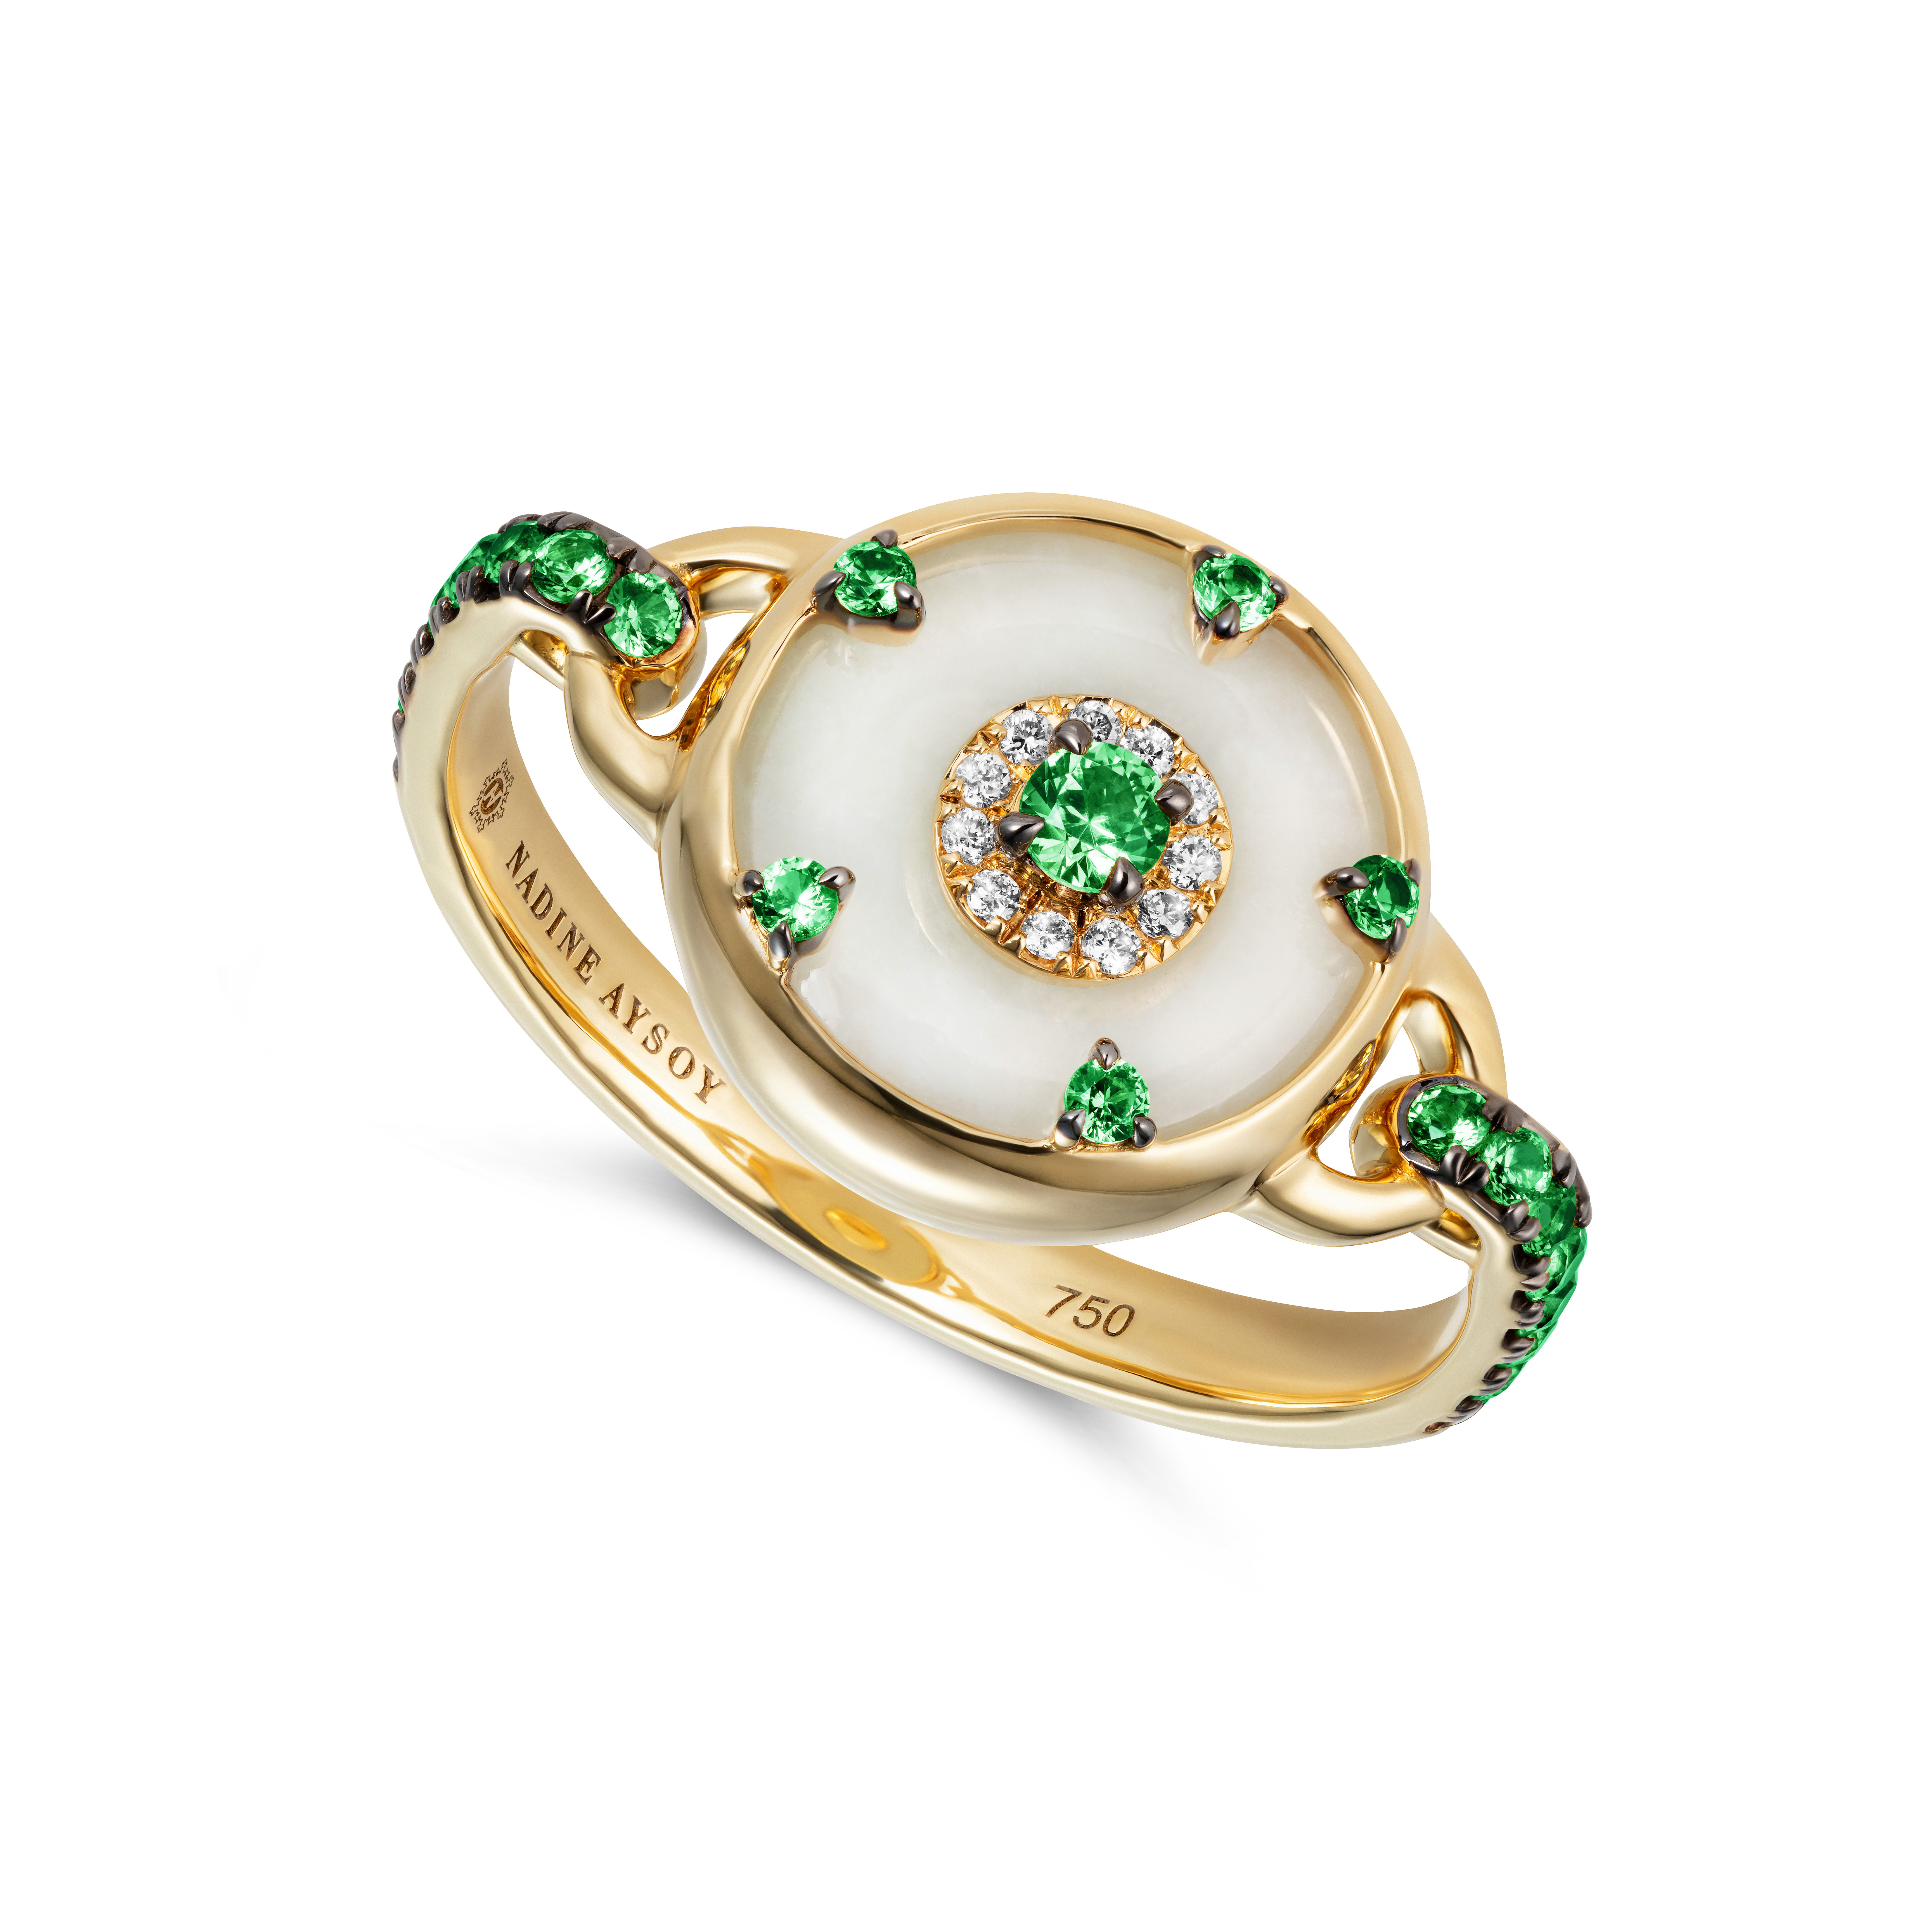 Celeste Petite Tsavorite and Jade Ring by Nadine Aysoy on curated-crowd.com